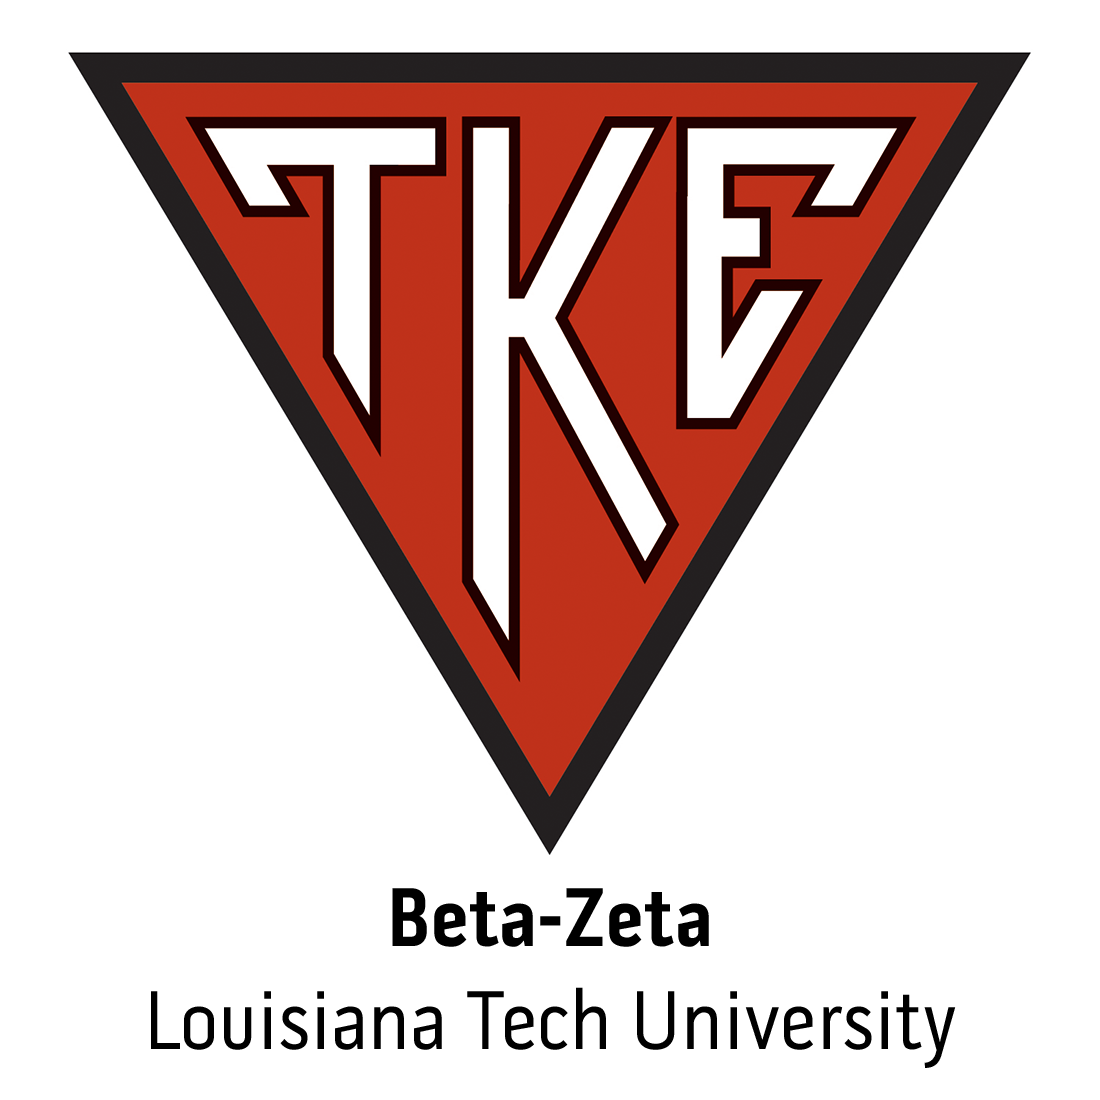 Beta-Zeta Colony at Louisiana Tech University